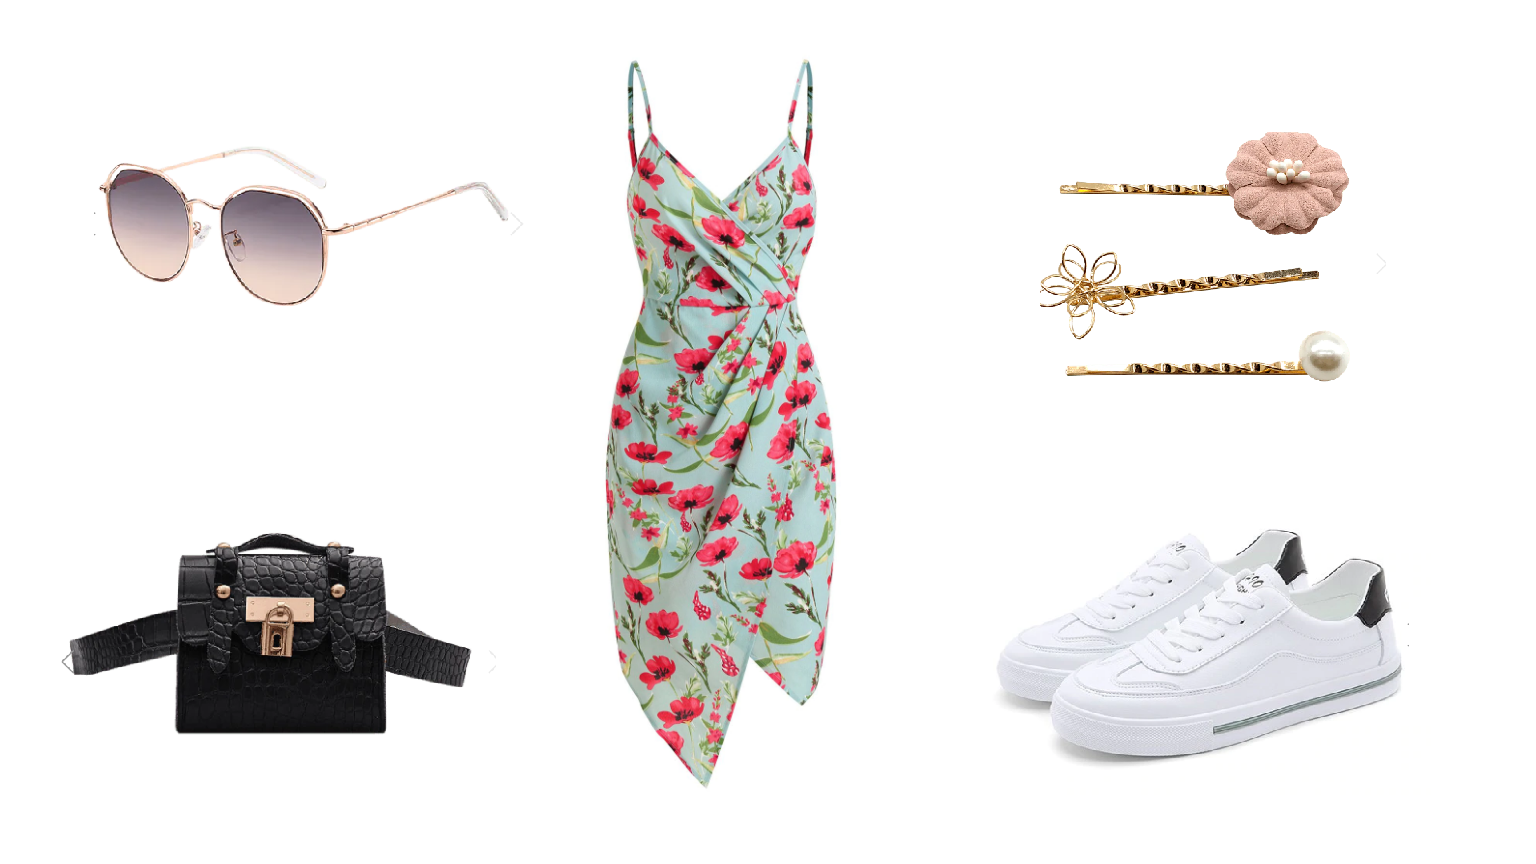 Wishlista-Dresslilz-summer-outfit-sport-and-elegance